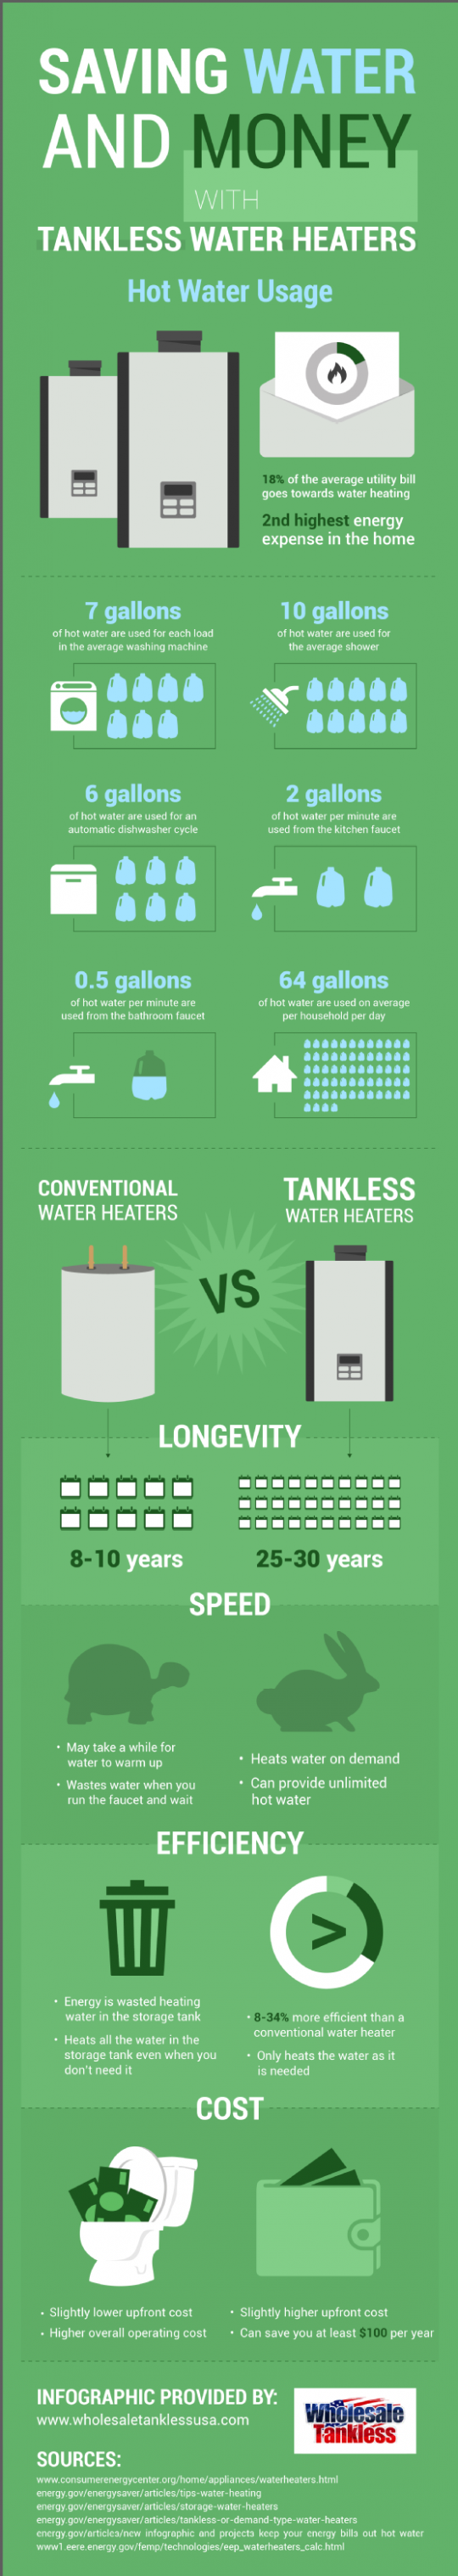 Saving Water and Money in San Diego with Tankless Water Heaters